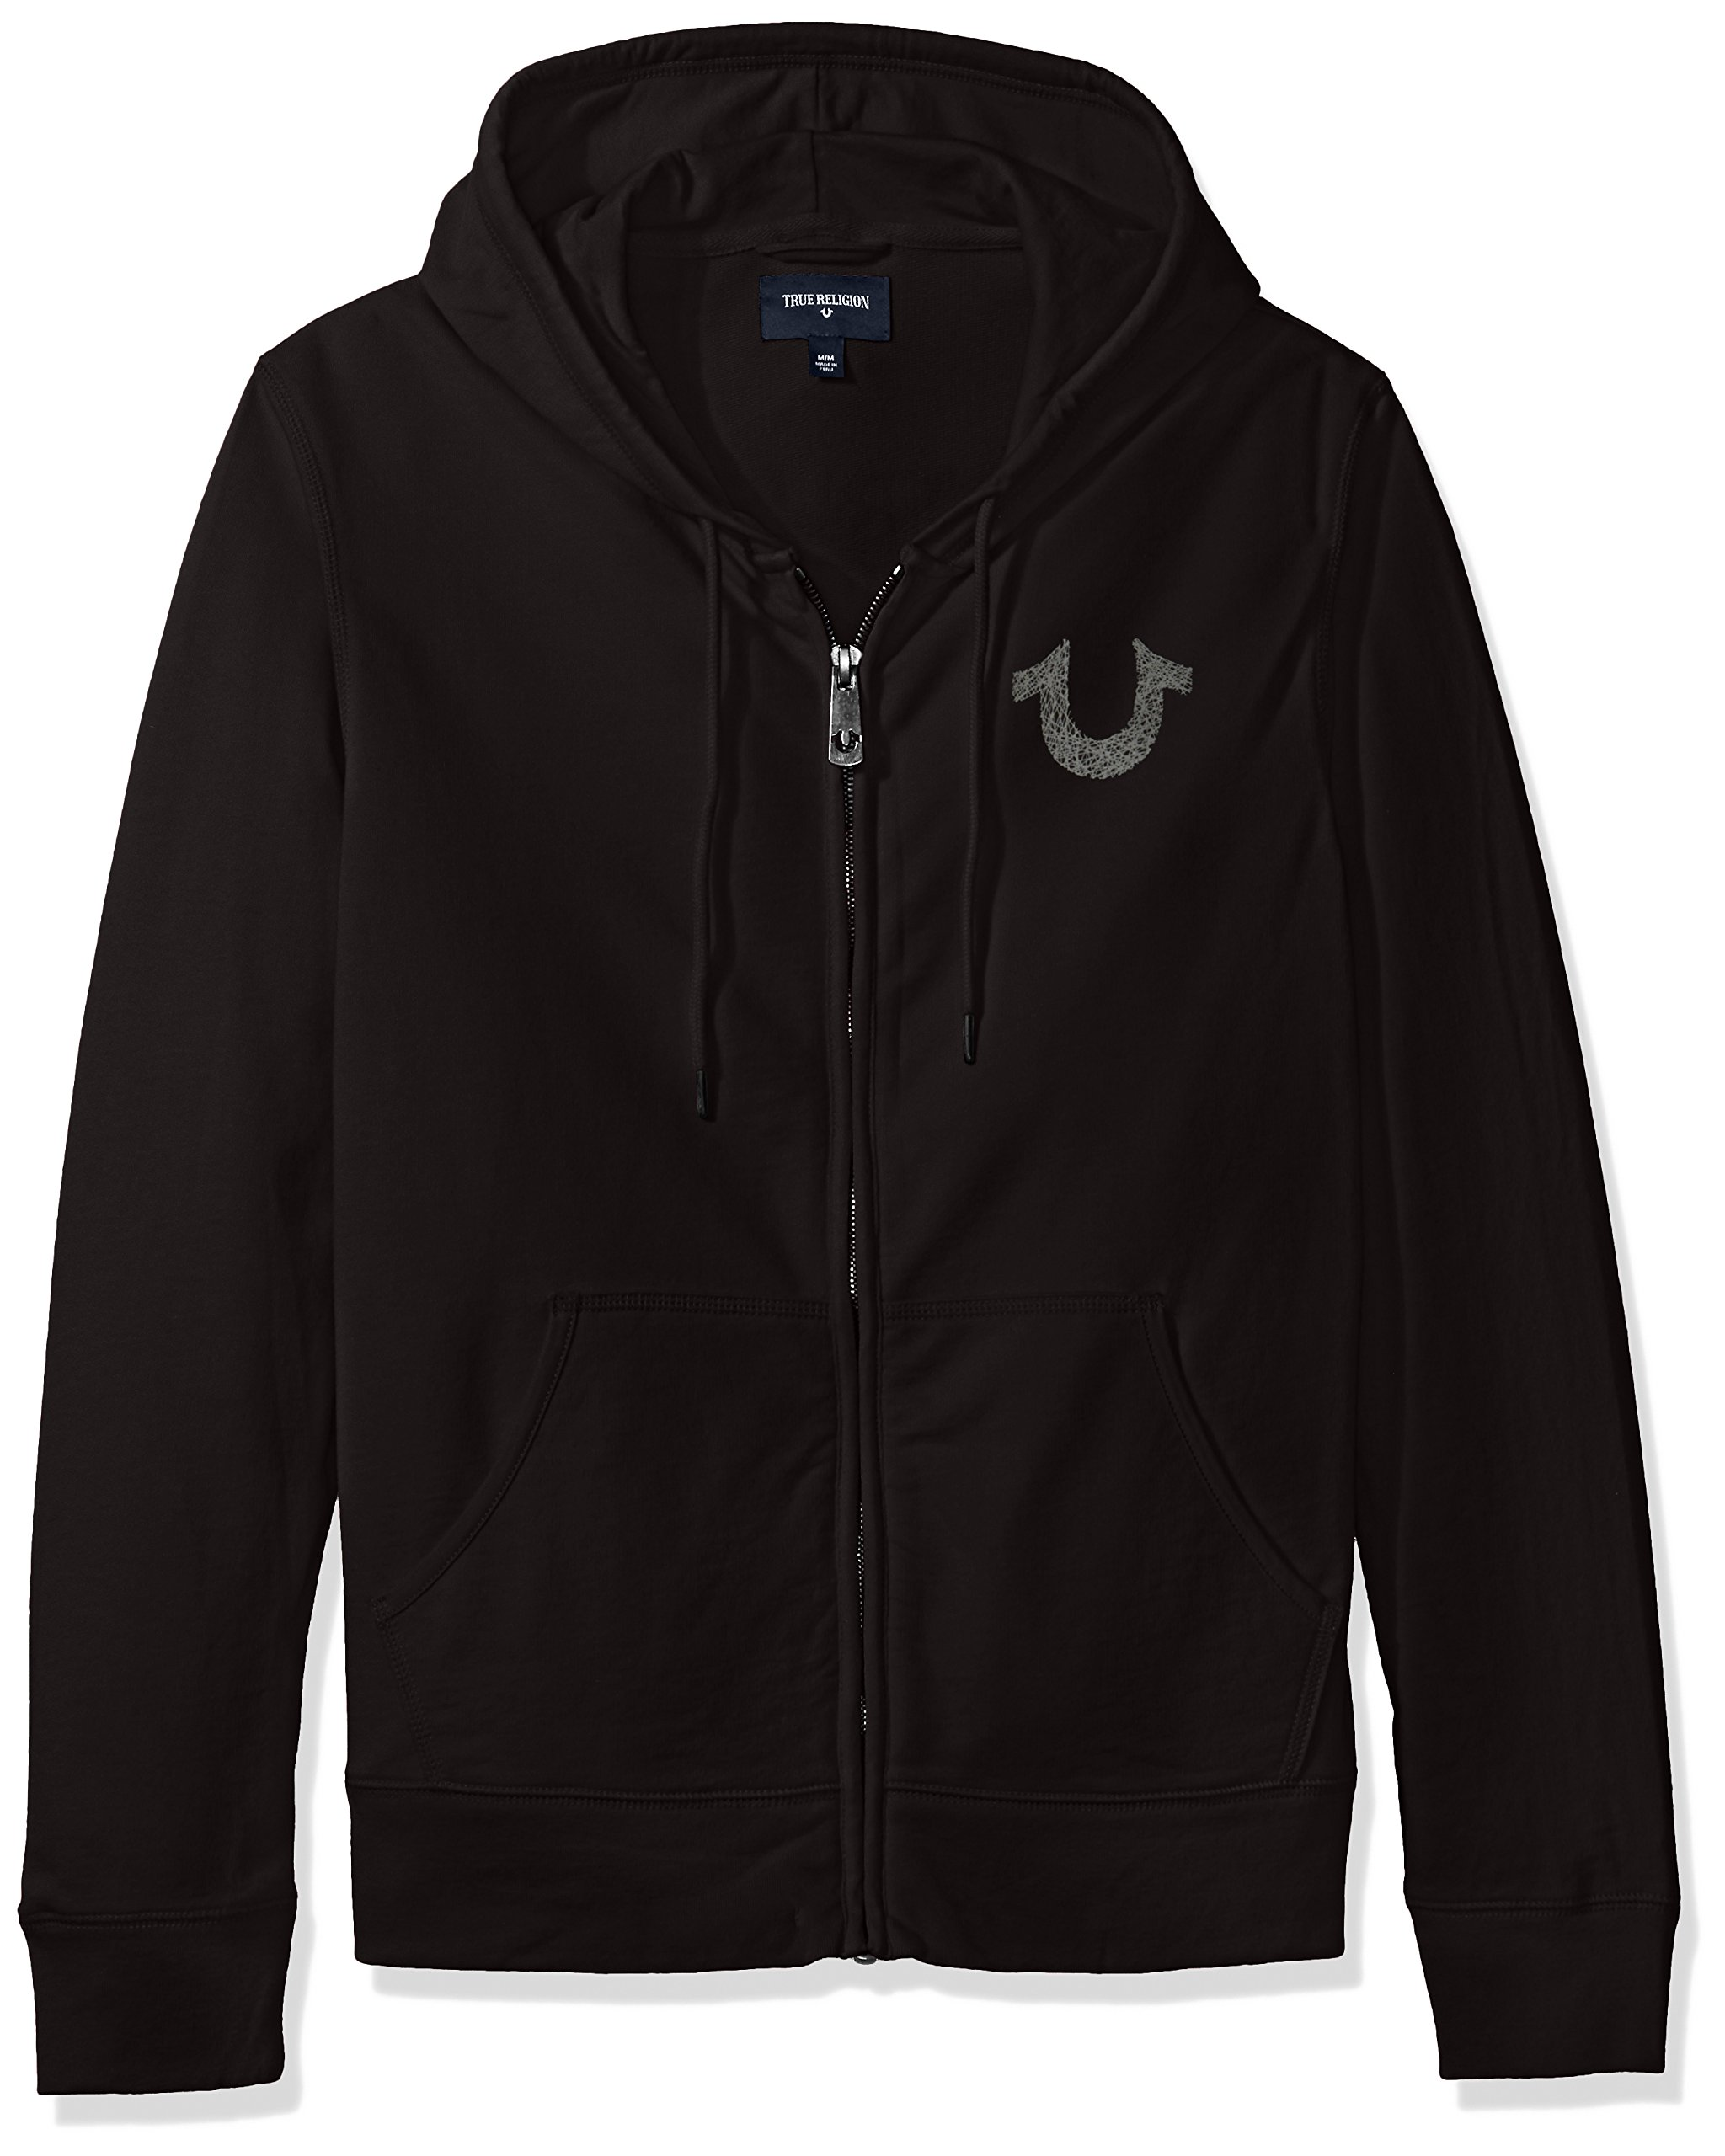 True Religion Men's Shoestring Horseshoe Hoodie, Jet Black, XL